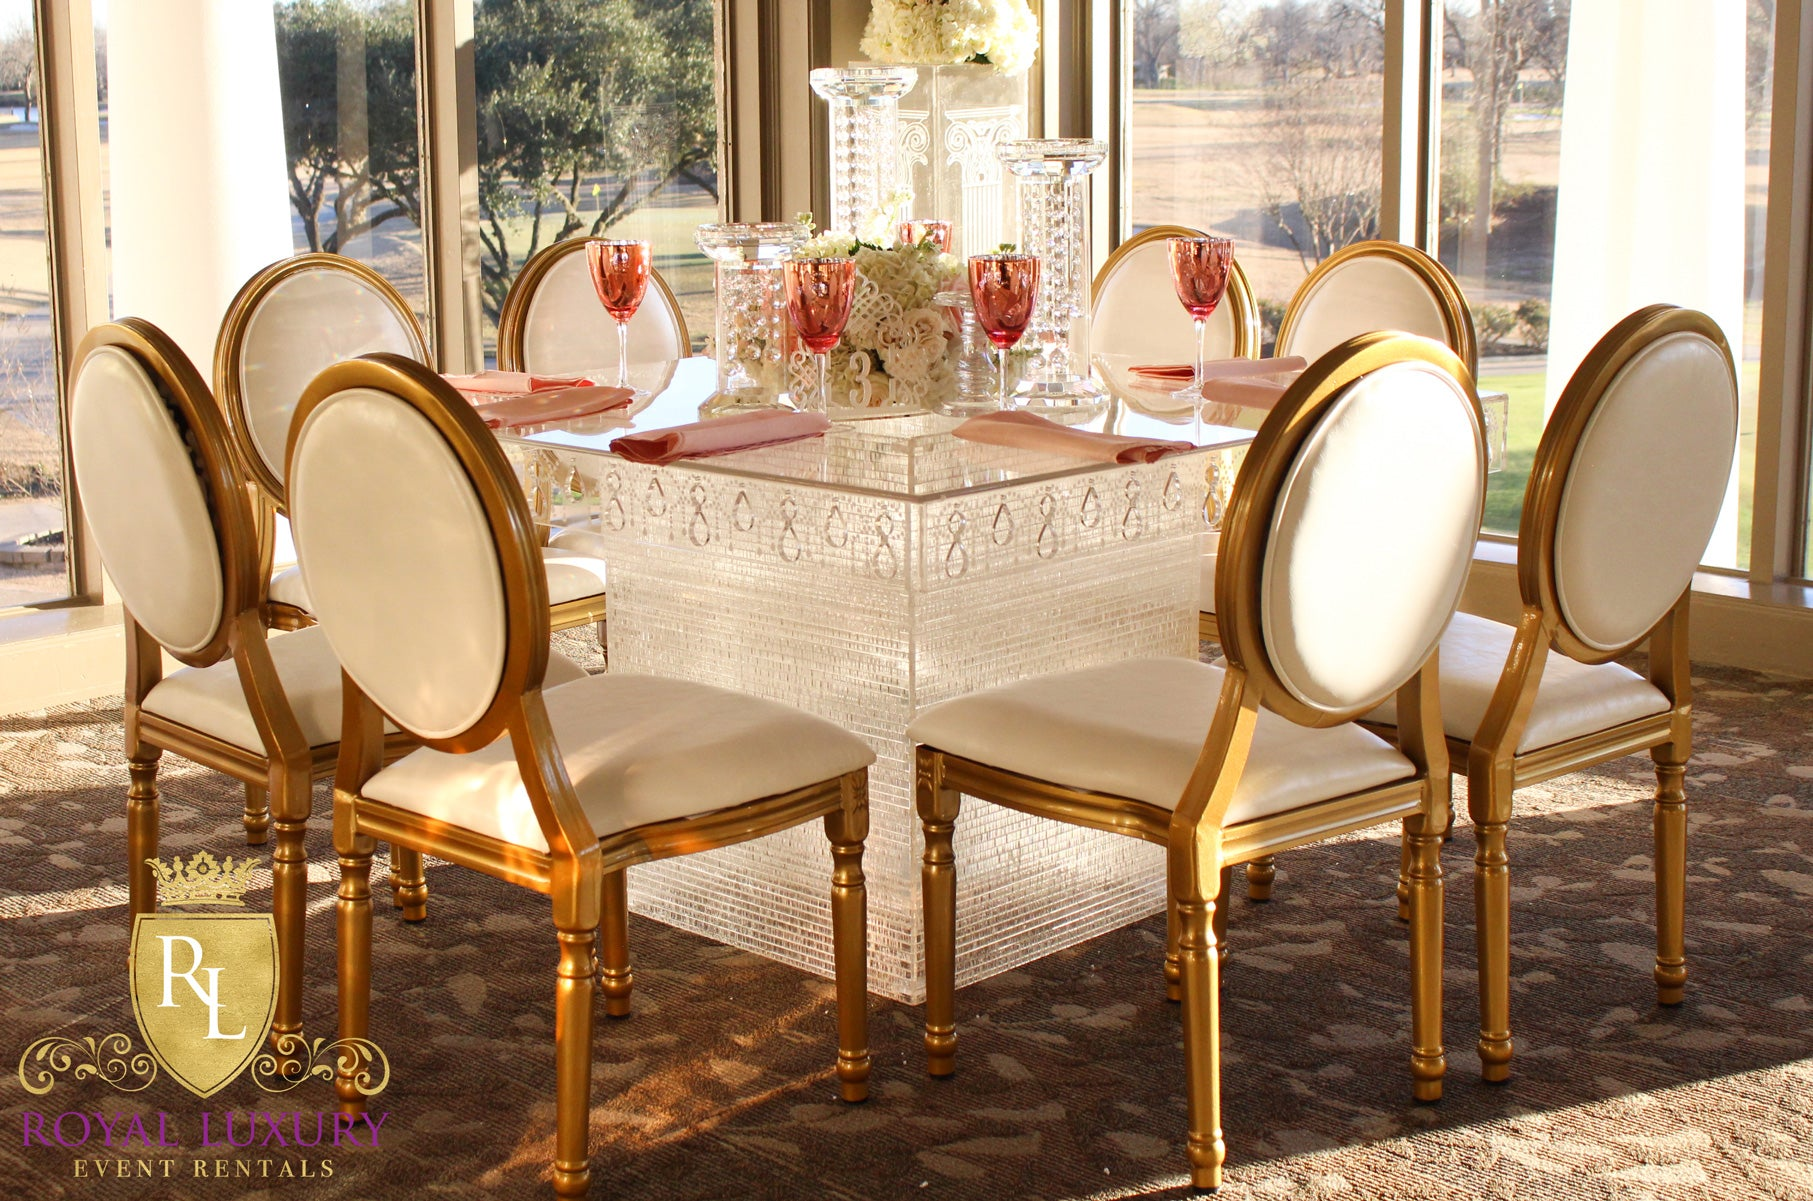 crystal acrylic square dining table 4x4 feet crystal acrylic square dining table 4 foot   luxury event rentals  rh   luxuryeventrentals com